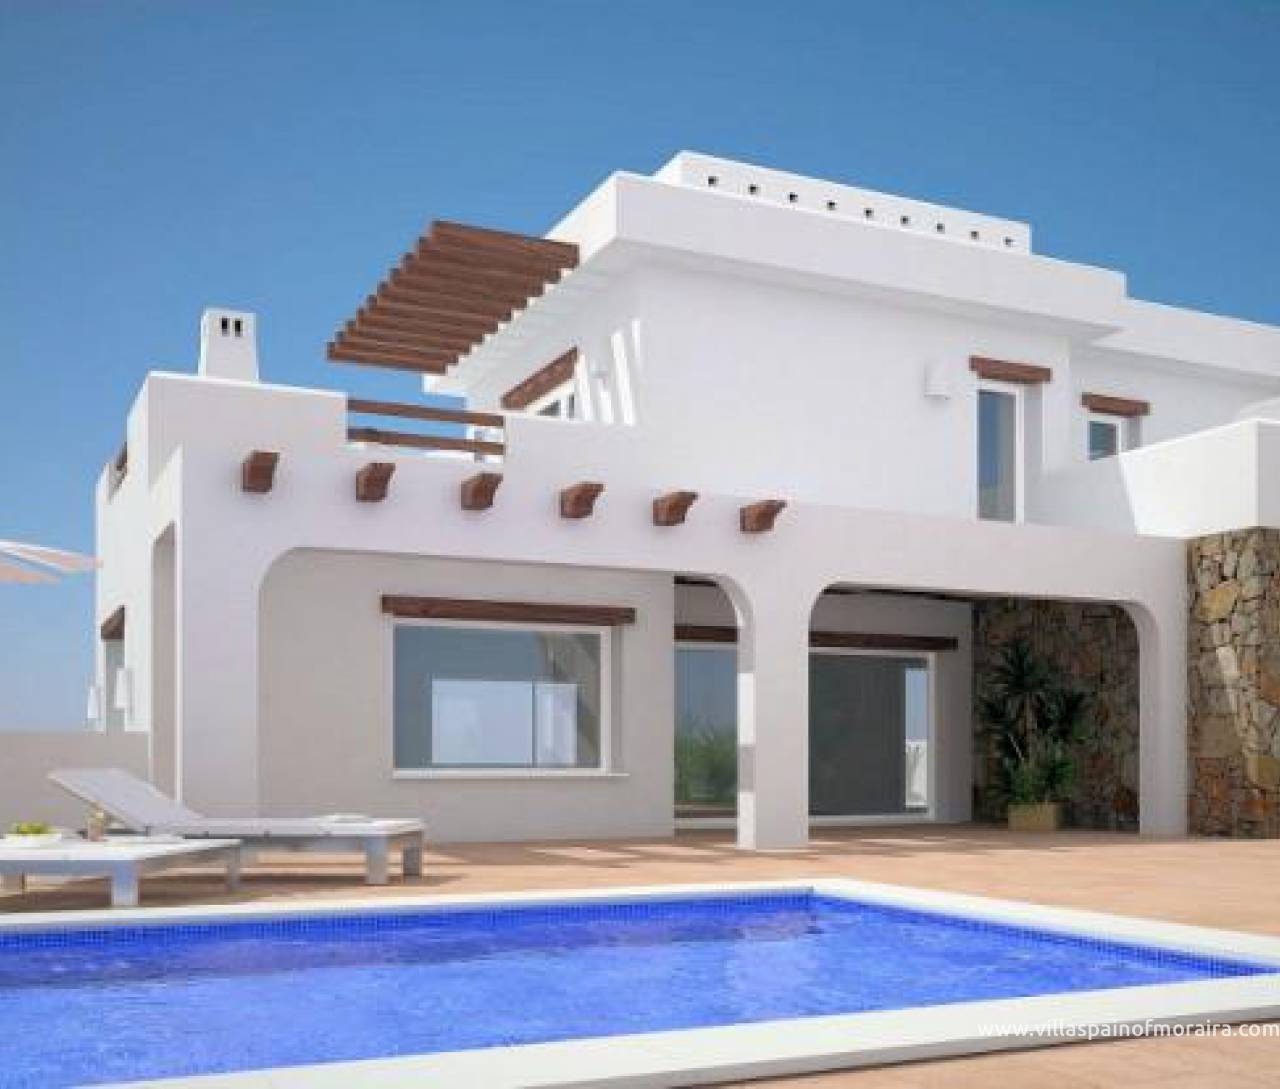 New build villa model costa Blanca